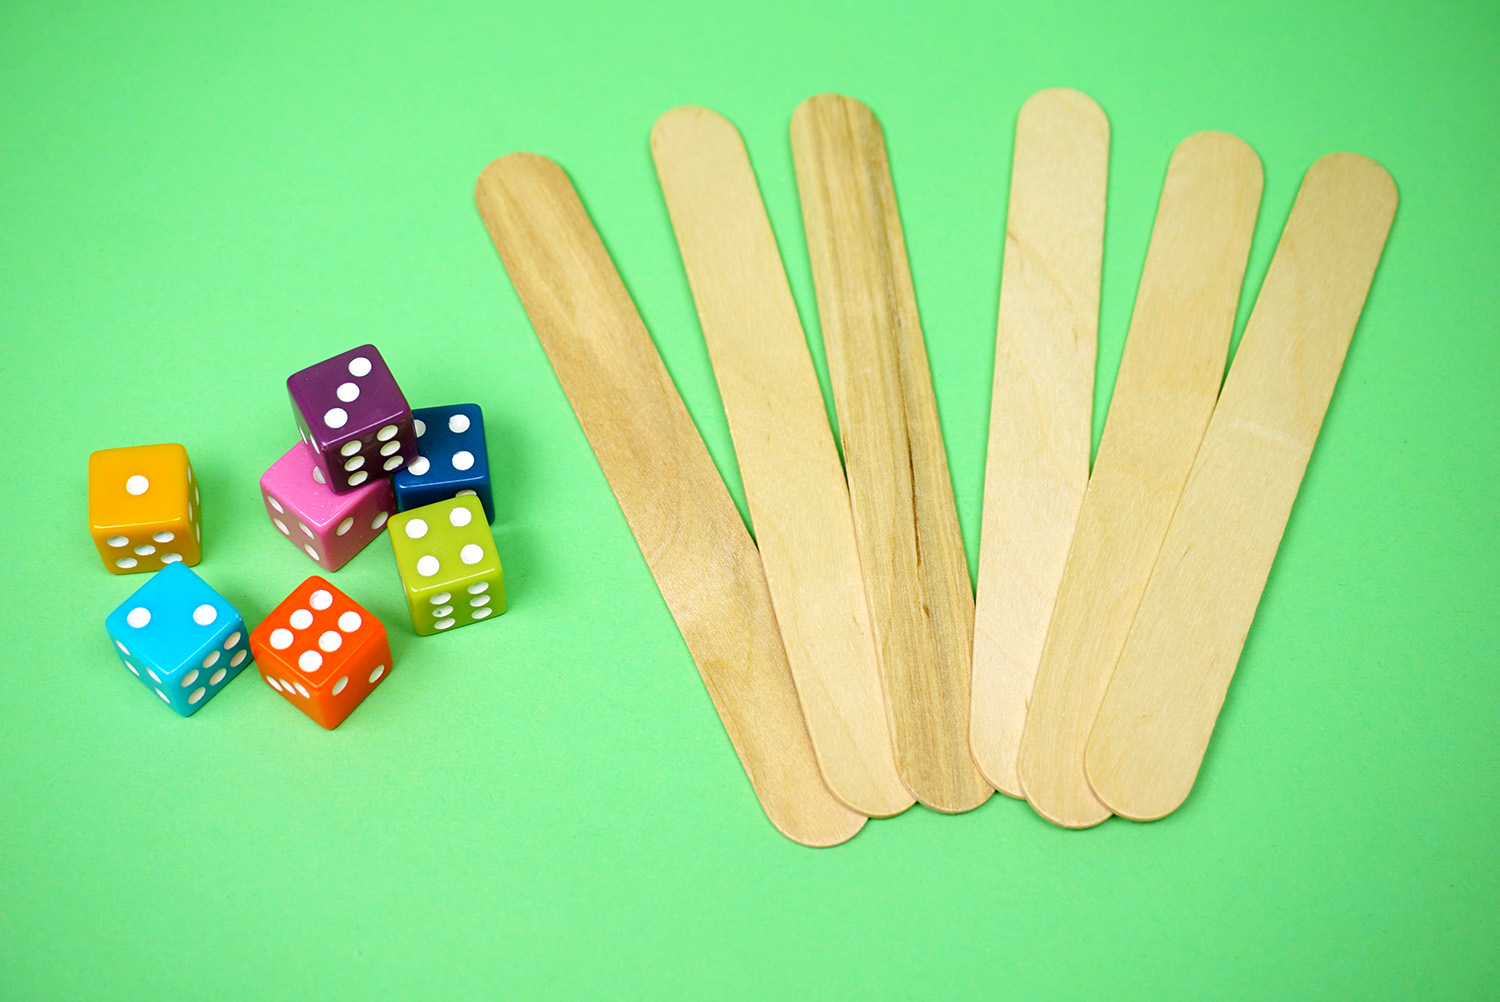 Dice and Craft Sticks - Minute to Win It Game Supplies